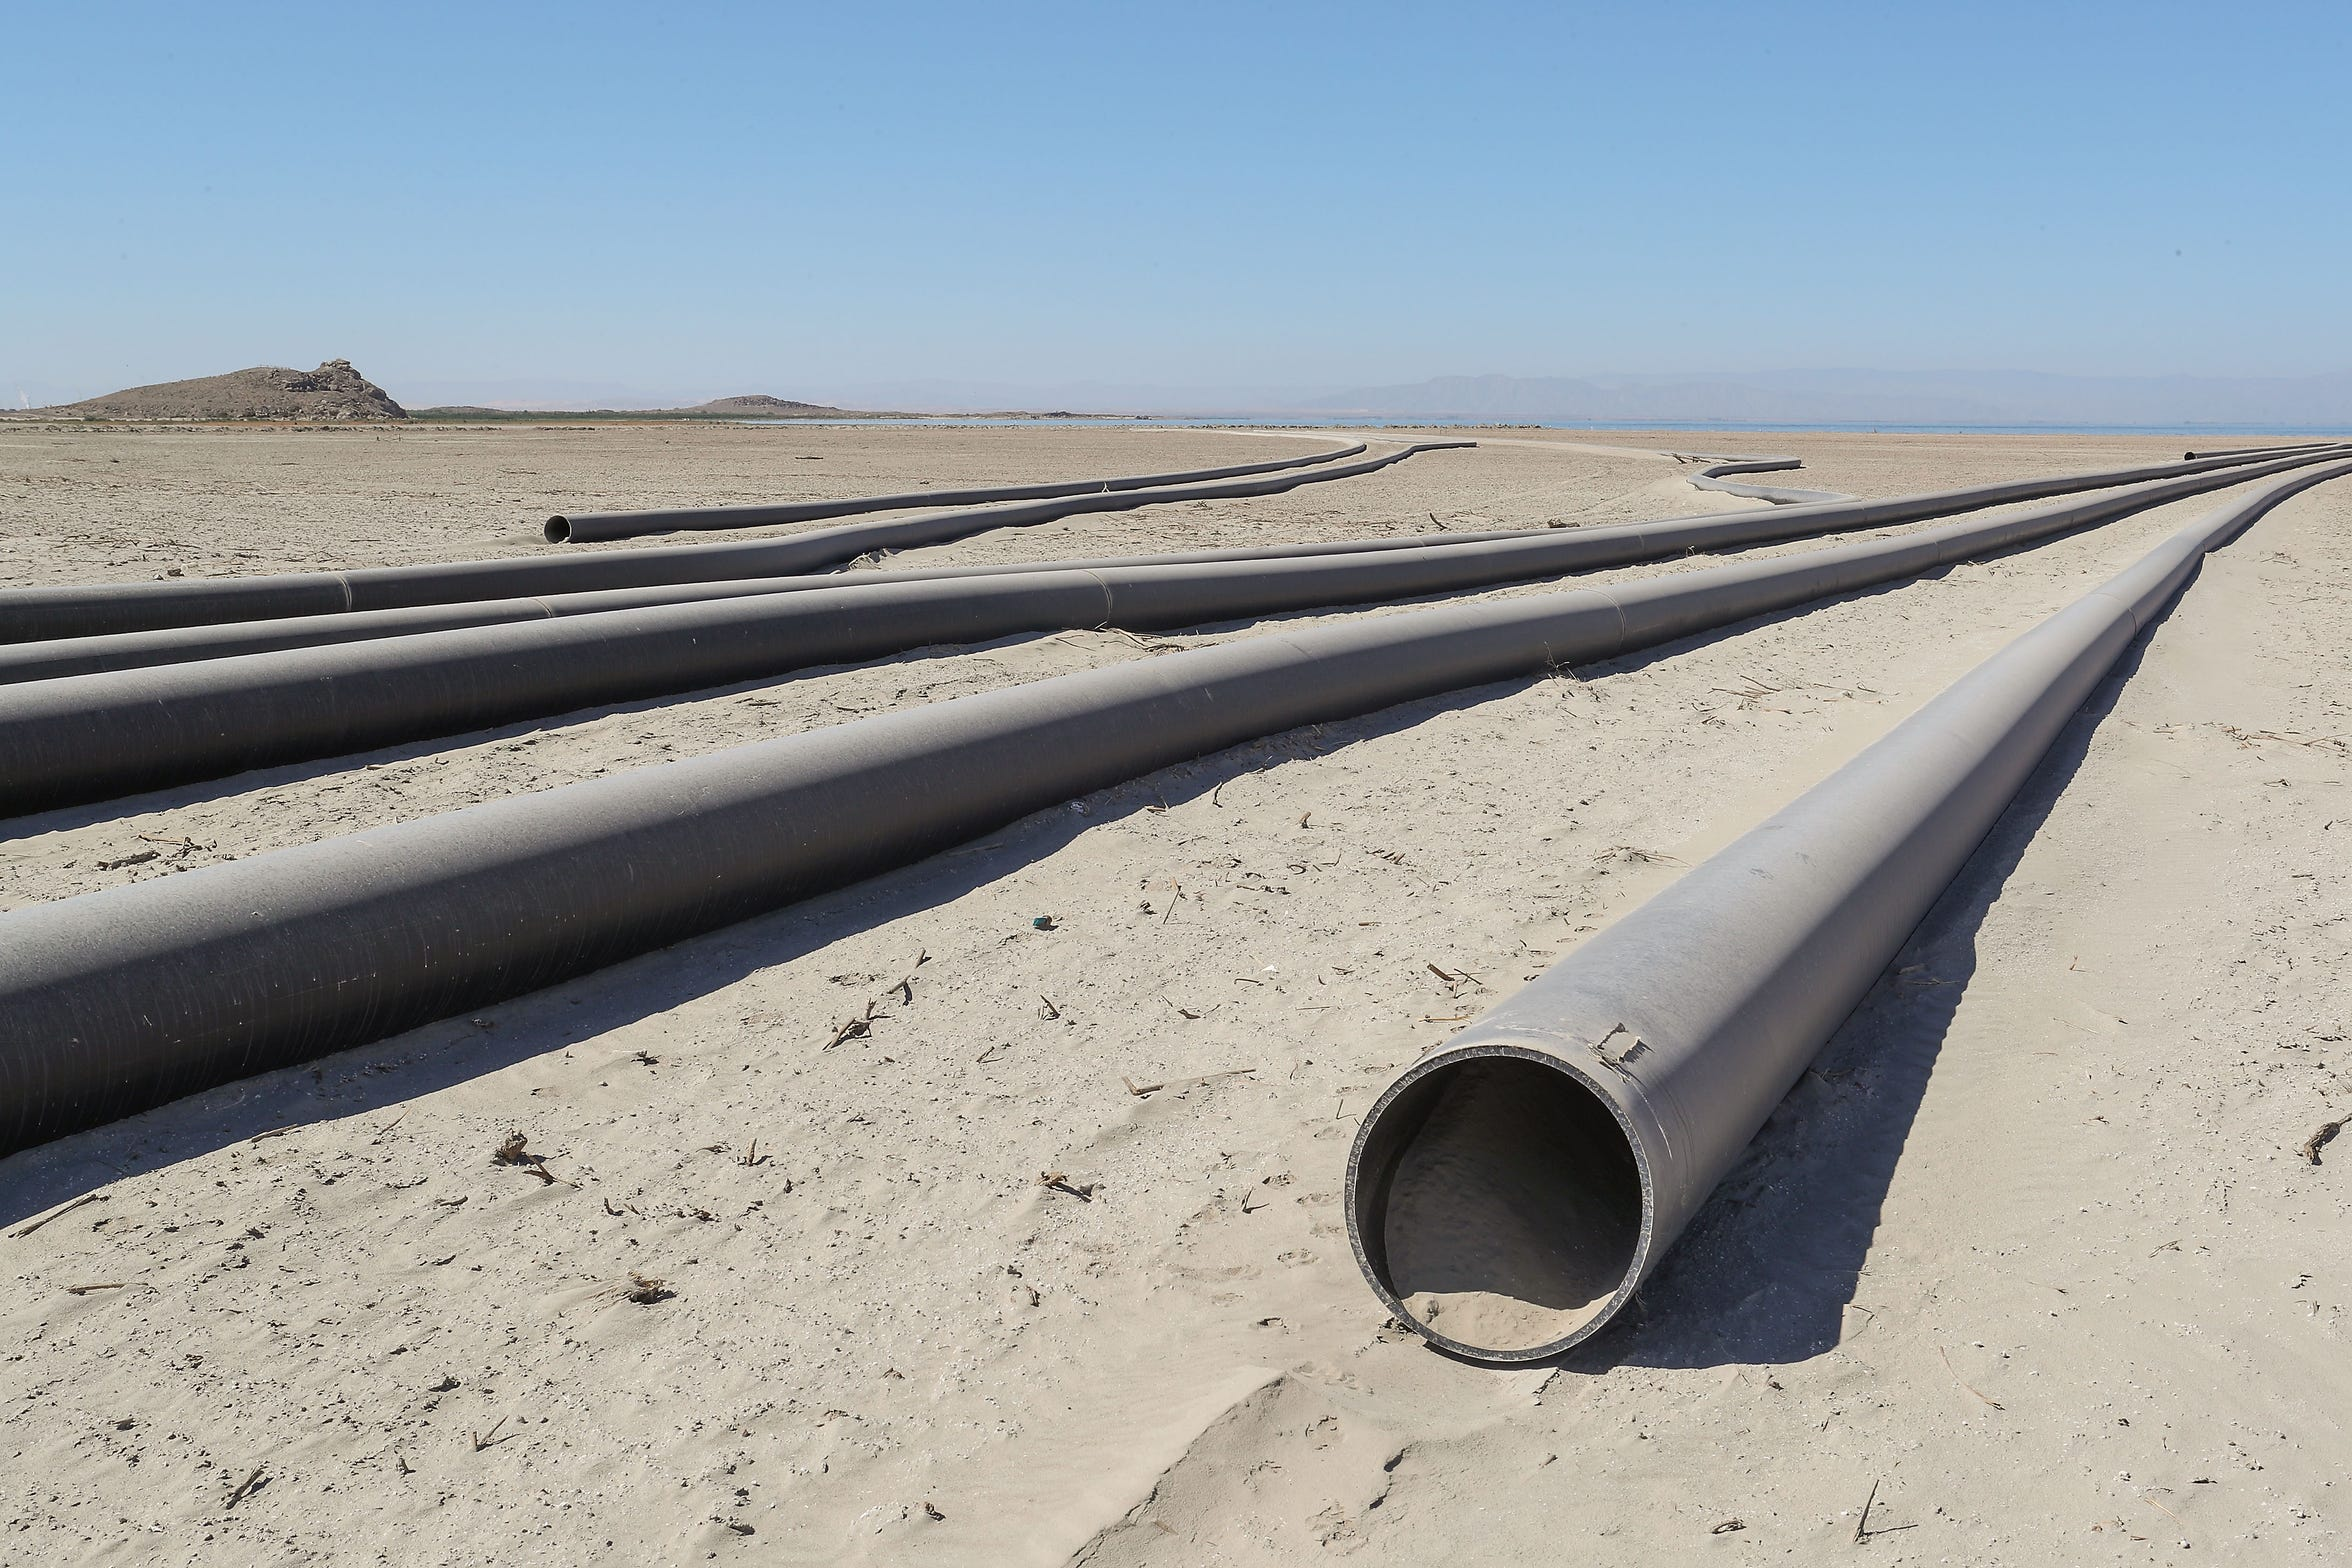 Large pipes will bring Salton Sea water inland to Red Hill Bay, where it will be mixed with fresh water from the Alamo River to create wetland bird habitat. The pipes are seen here on Sept. 12, 2018.